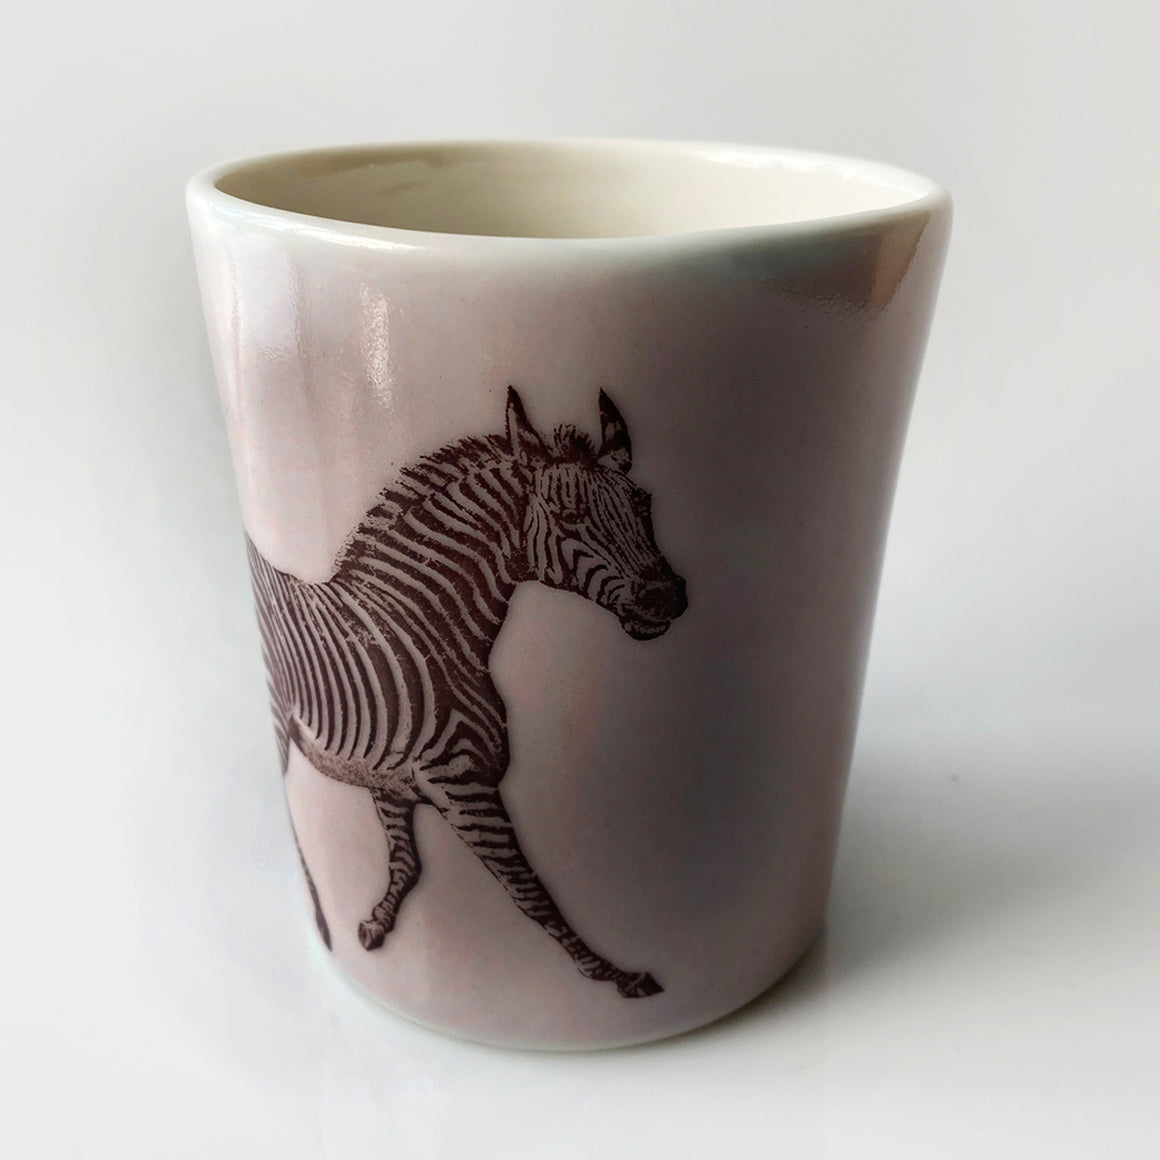 12oz Porcelain Animal Tumbler (Zebra)